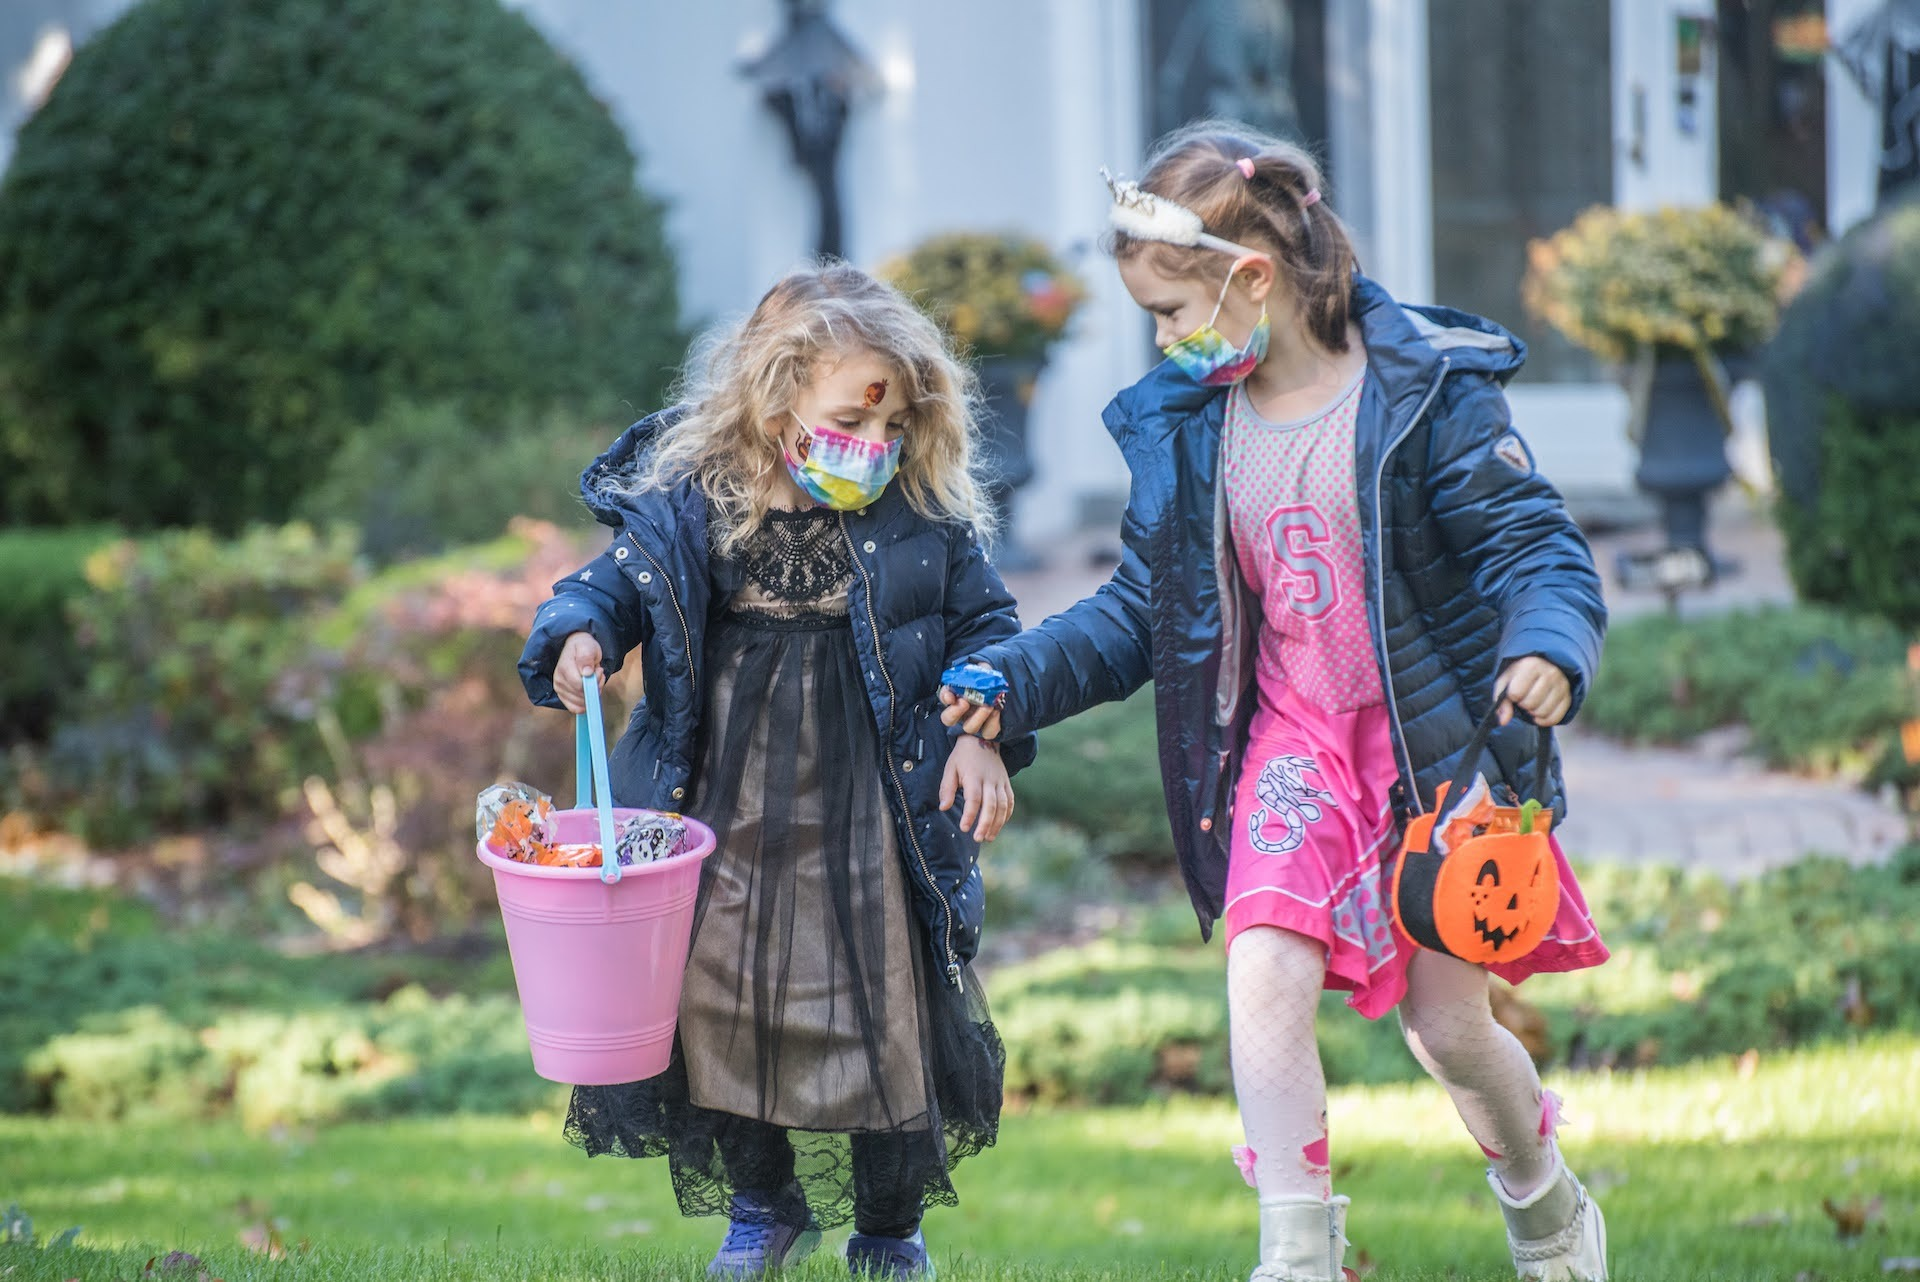 Trick or Treat example photo